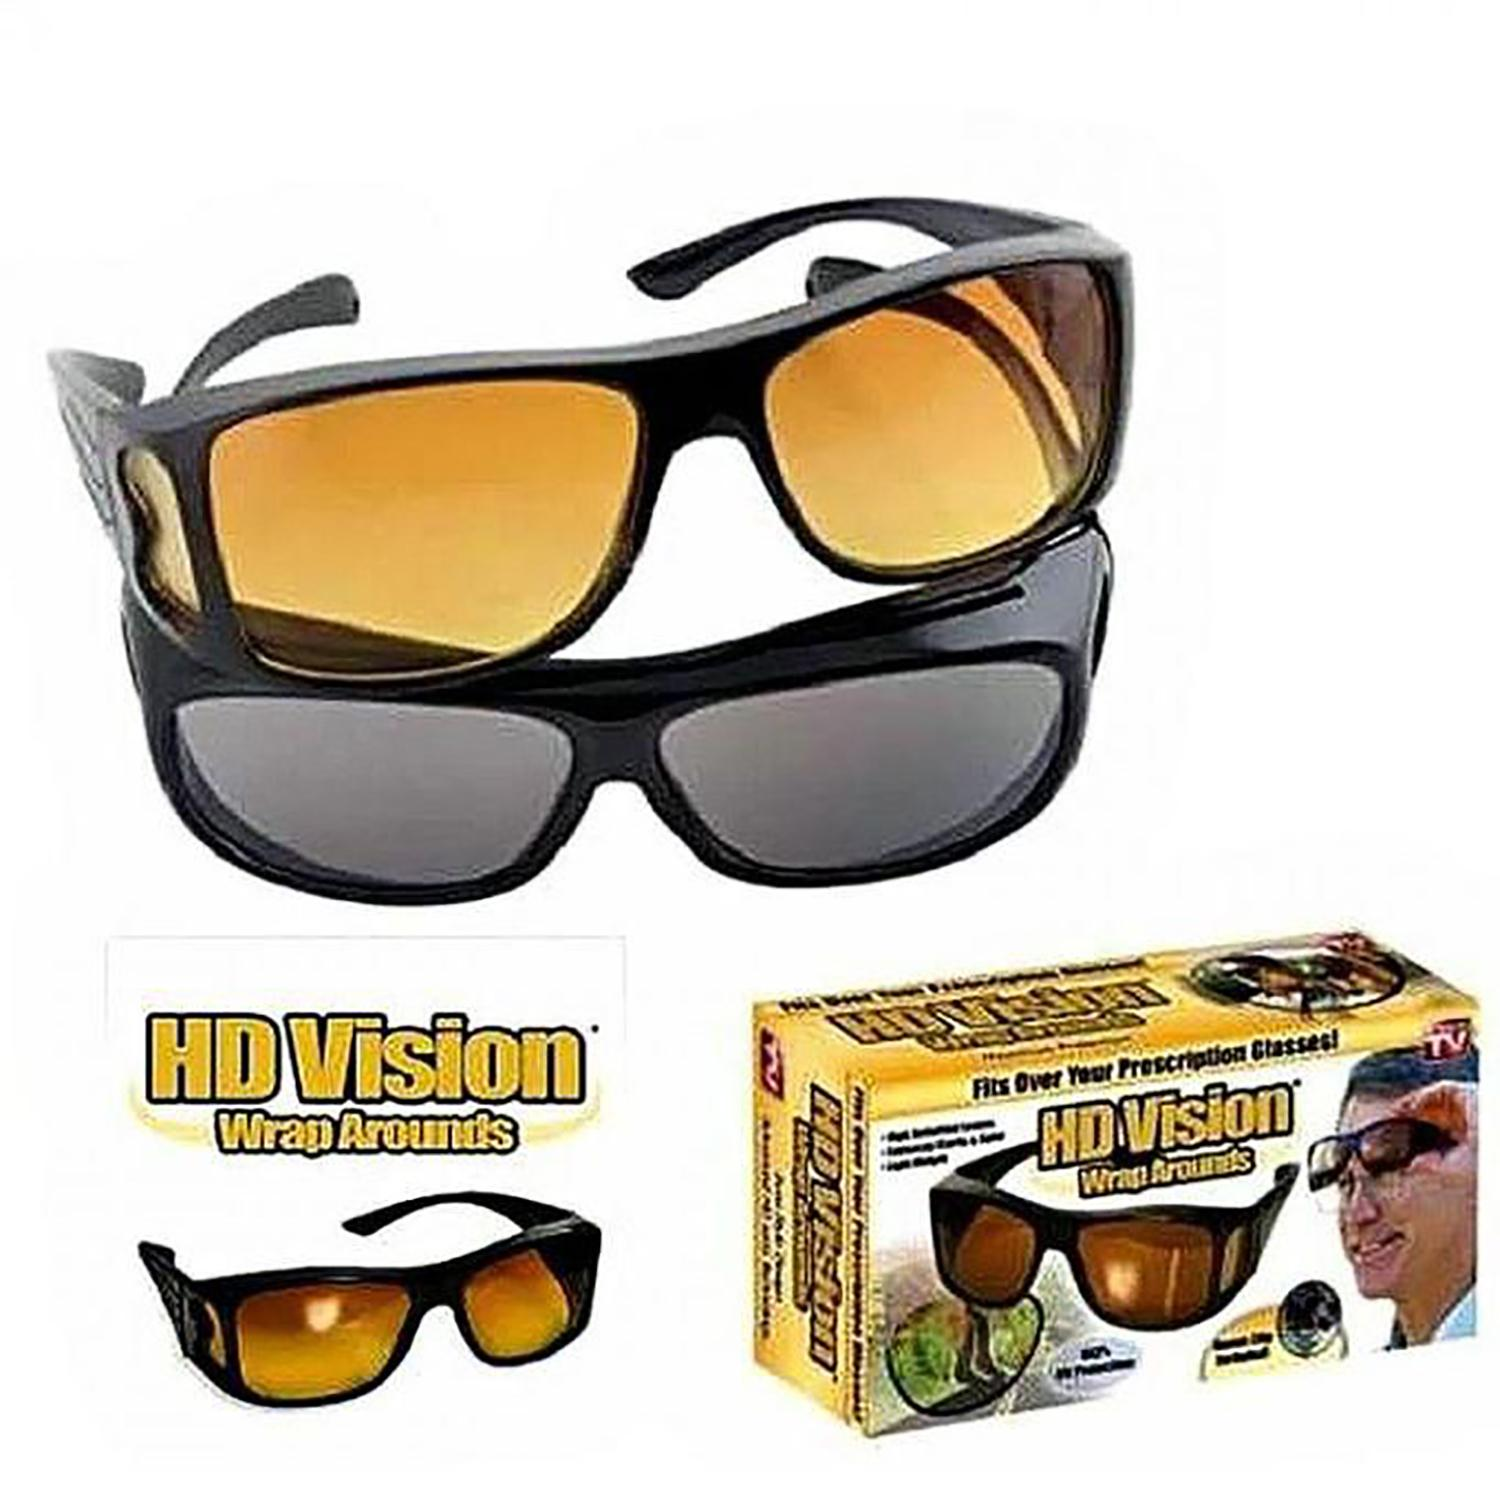 895d8753be HD Vision Anti Glare Night View Driving Glasses Wrap Around Sunglasses Set  of 2